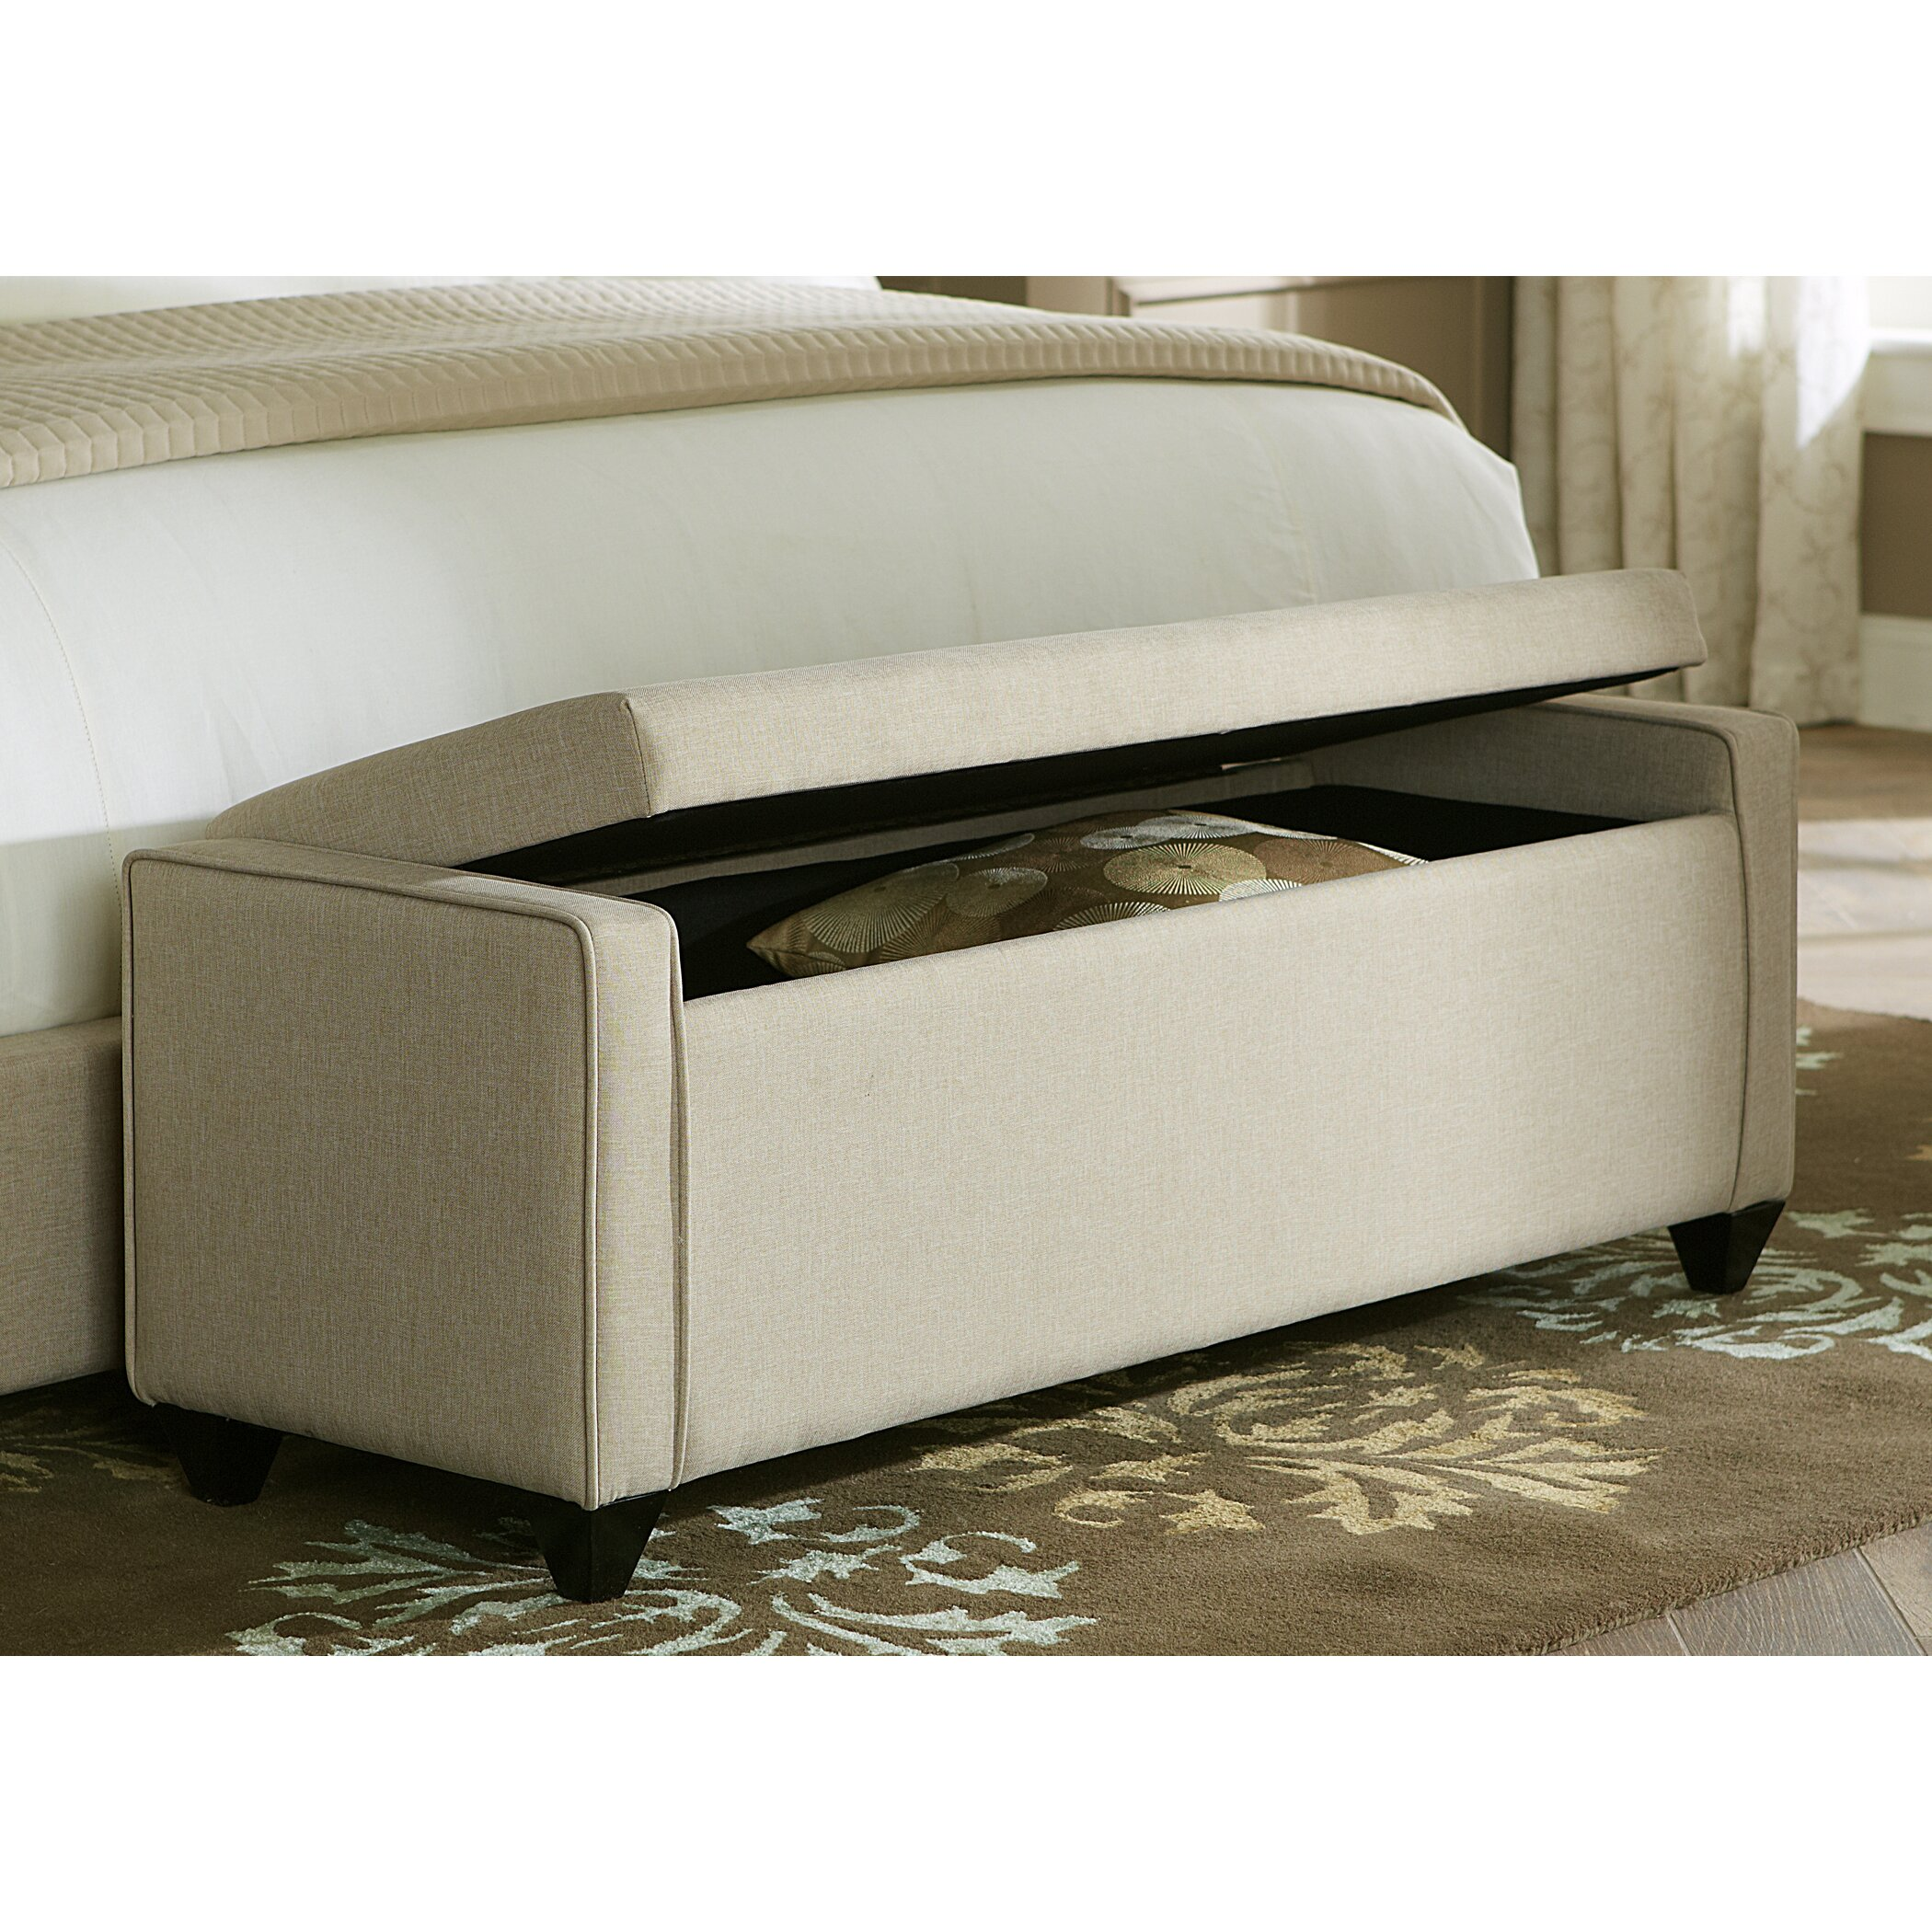 Liberty Furniture Bedroom Liberty Furniture Upholstered Storage Bedroom Bench Reviews